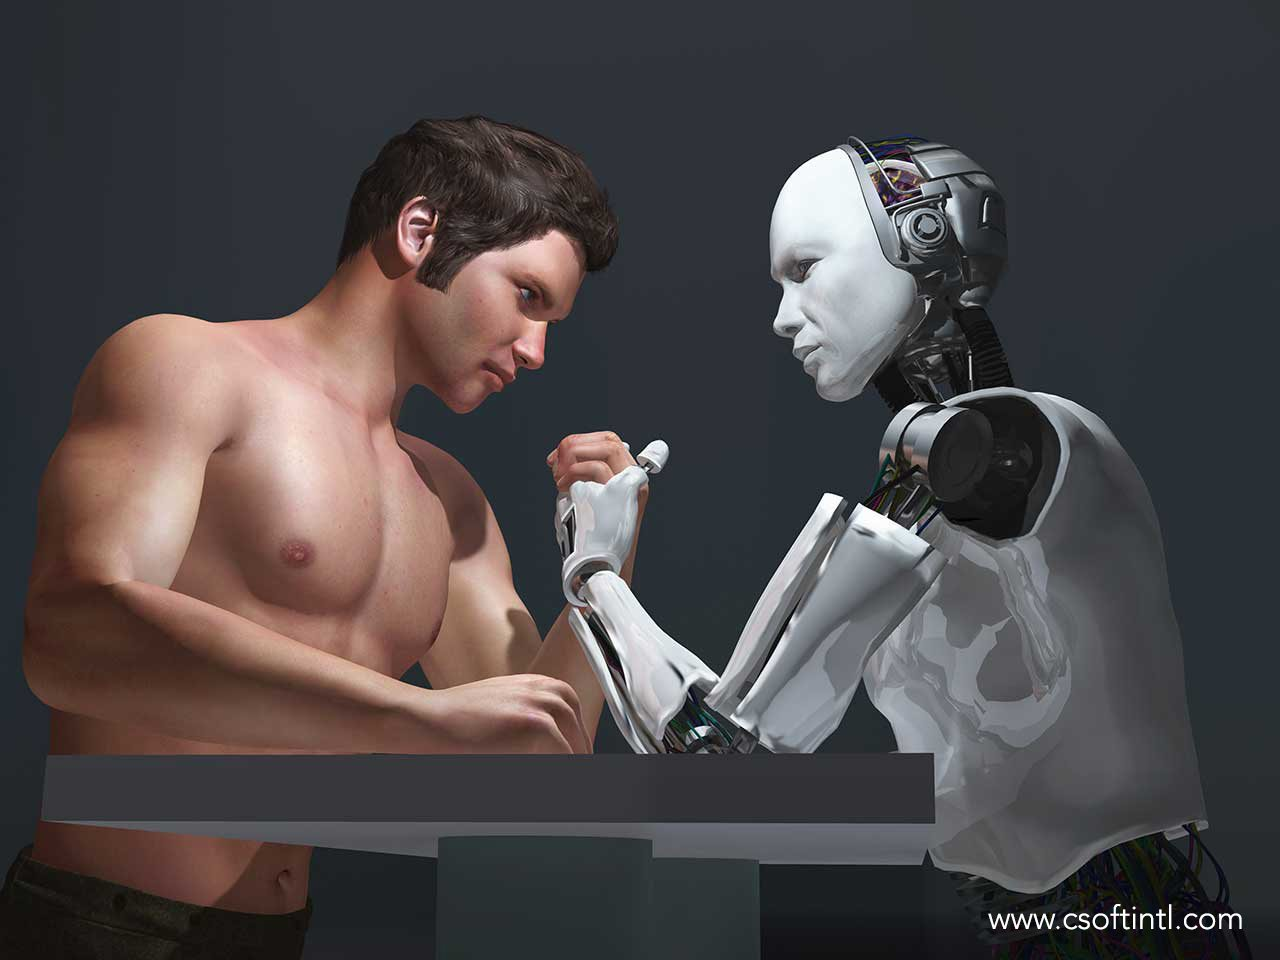 The Great Debate Machine vs Human